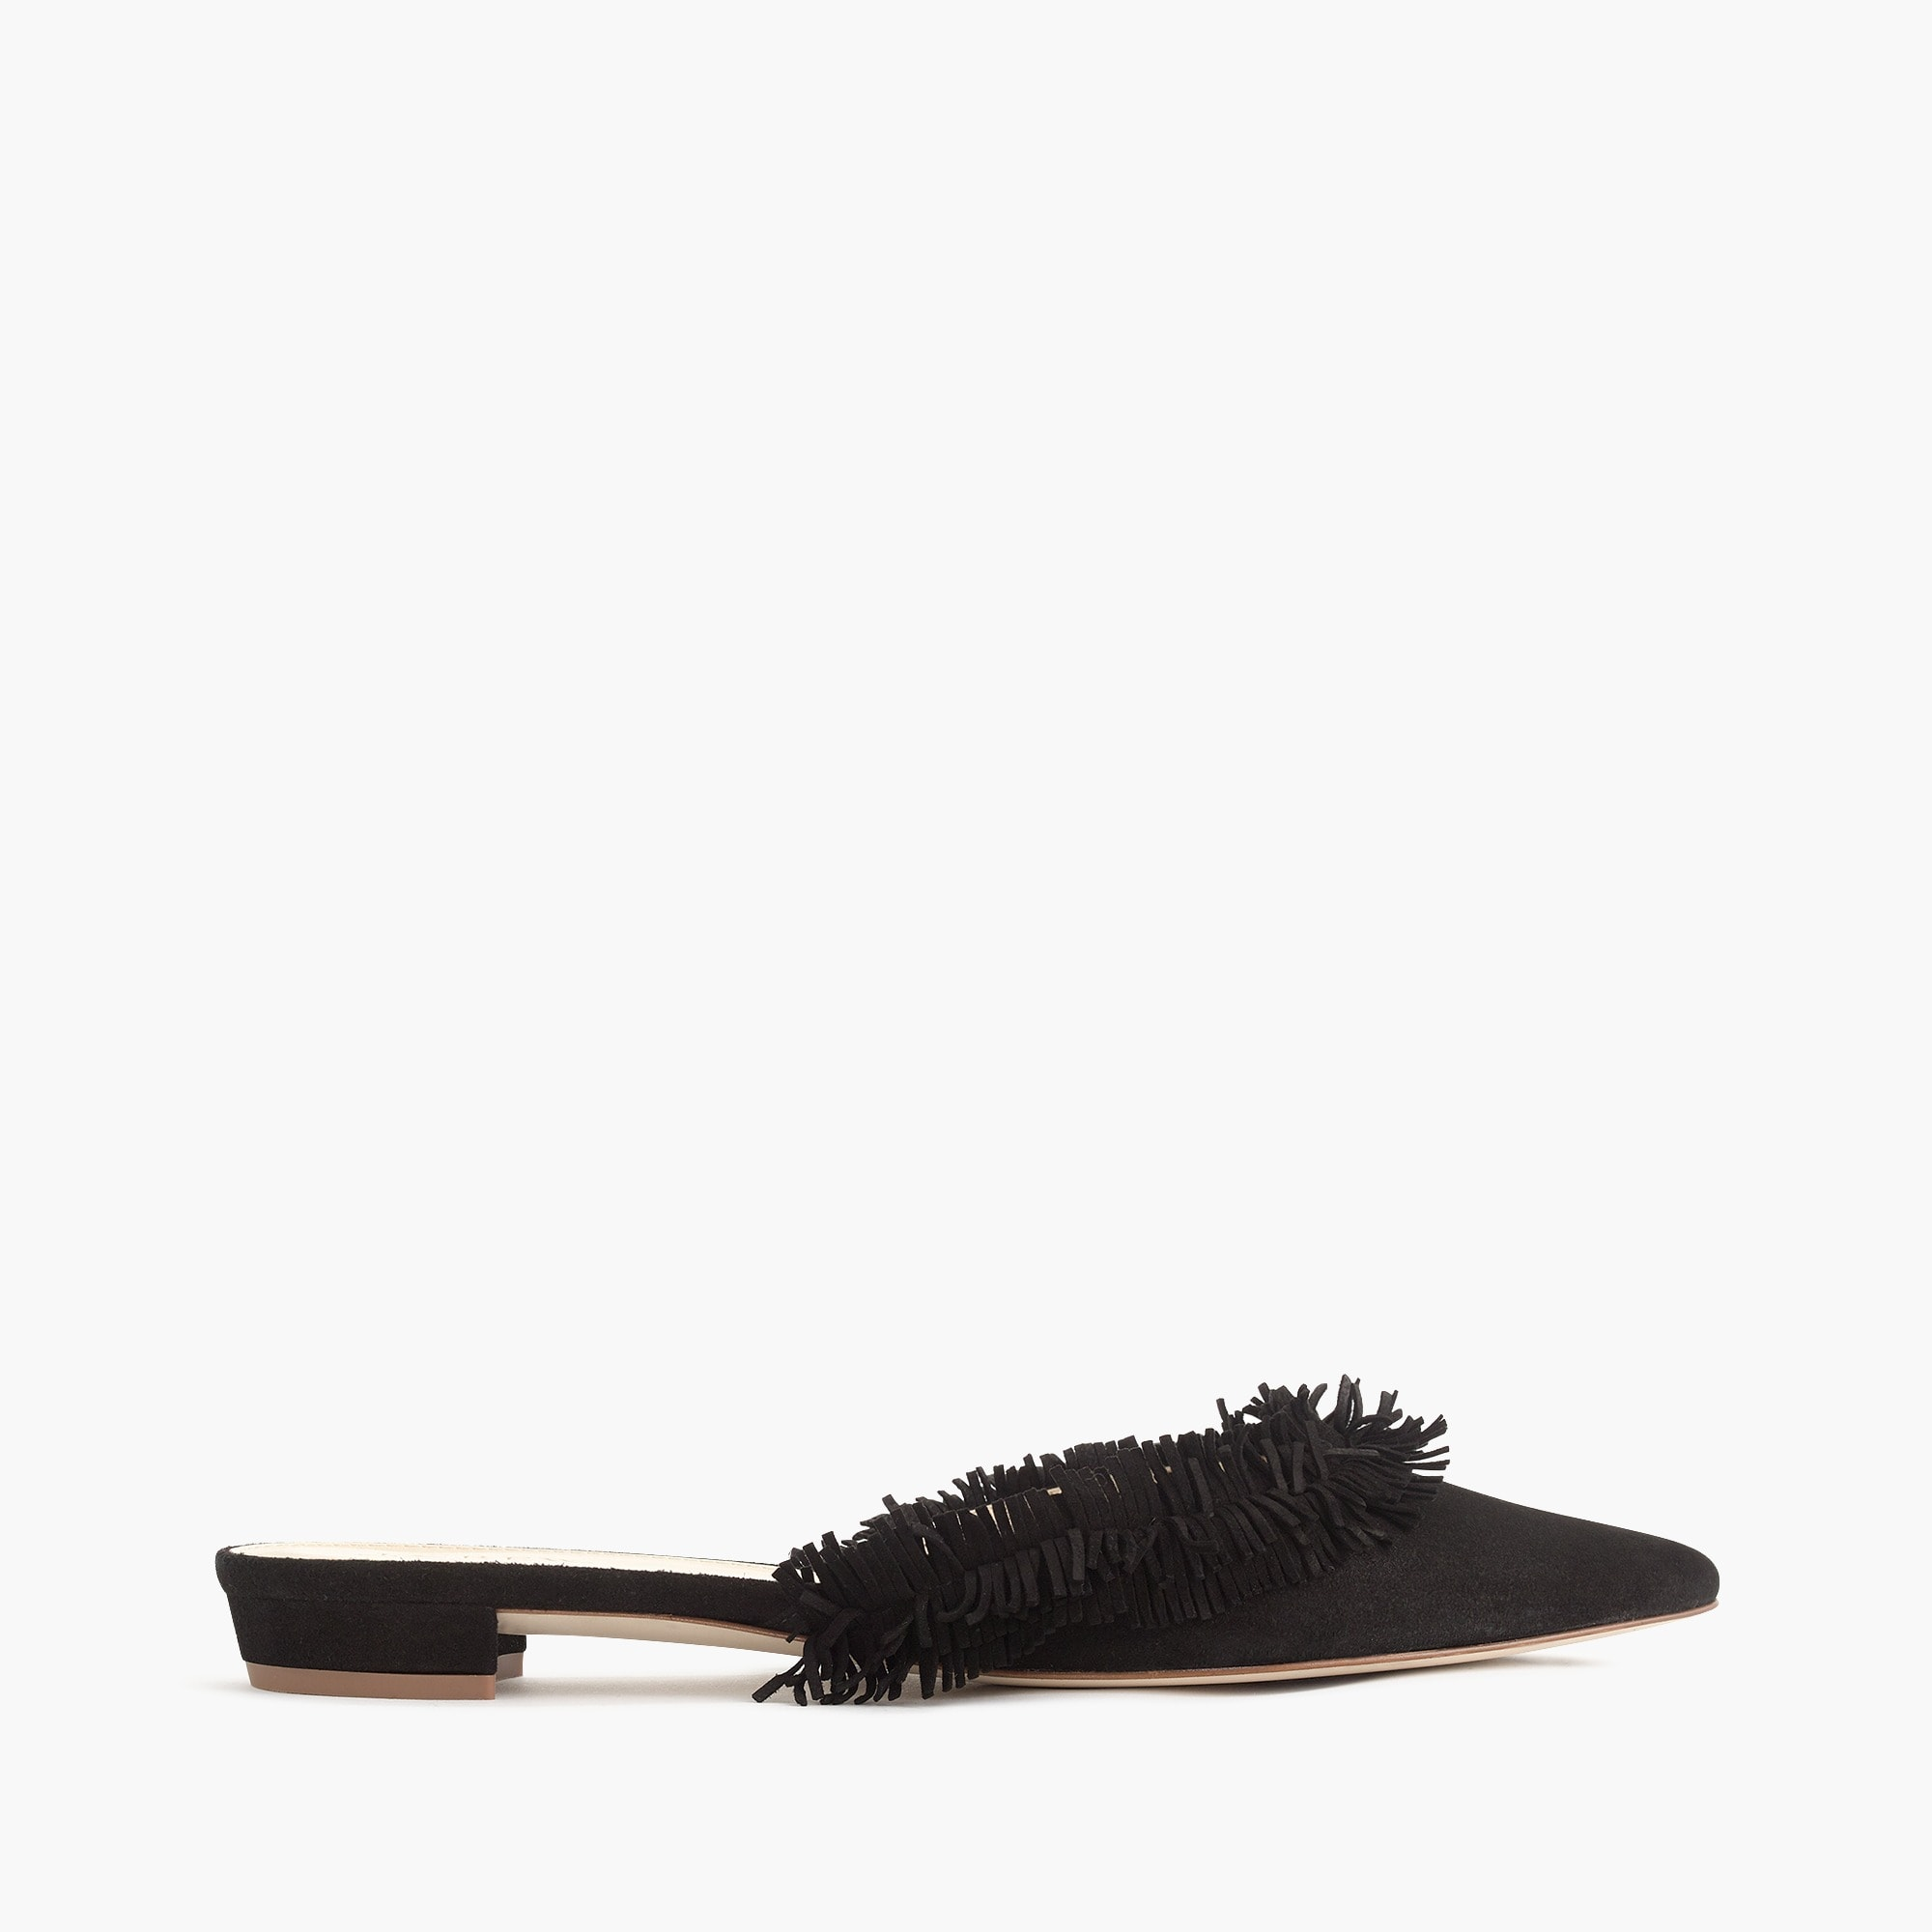 Image 3 for Suede fringe slipper mules